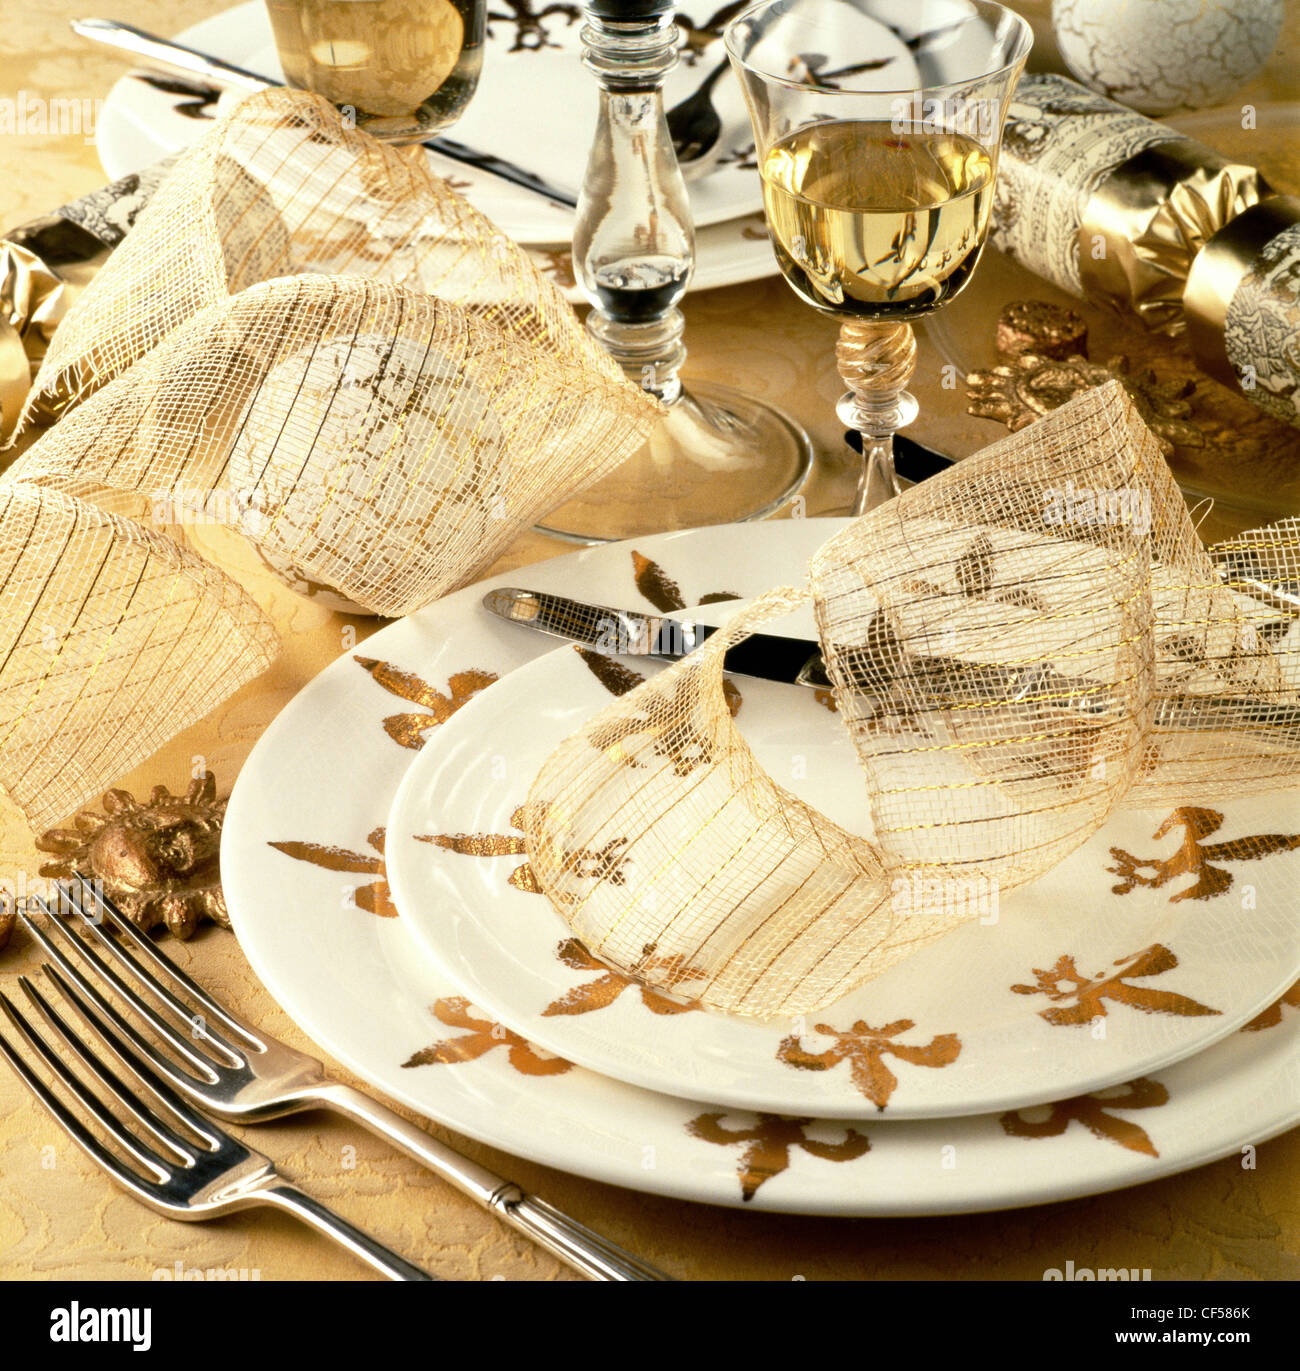 A special gourmet feast Table setting with white and gold fleur de lys plates crackers gold ribbon and glasses of white wine & A special gourmet feast Table setting with white and gold fleur de ...